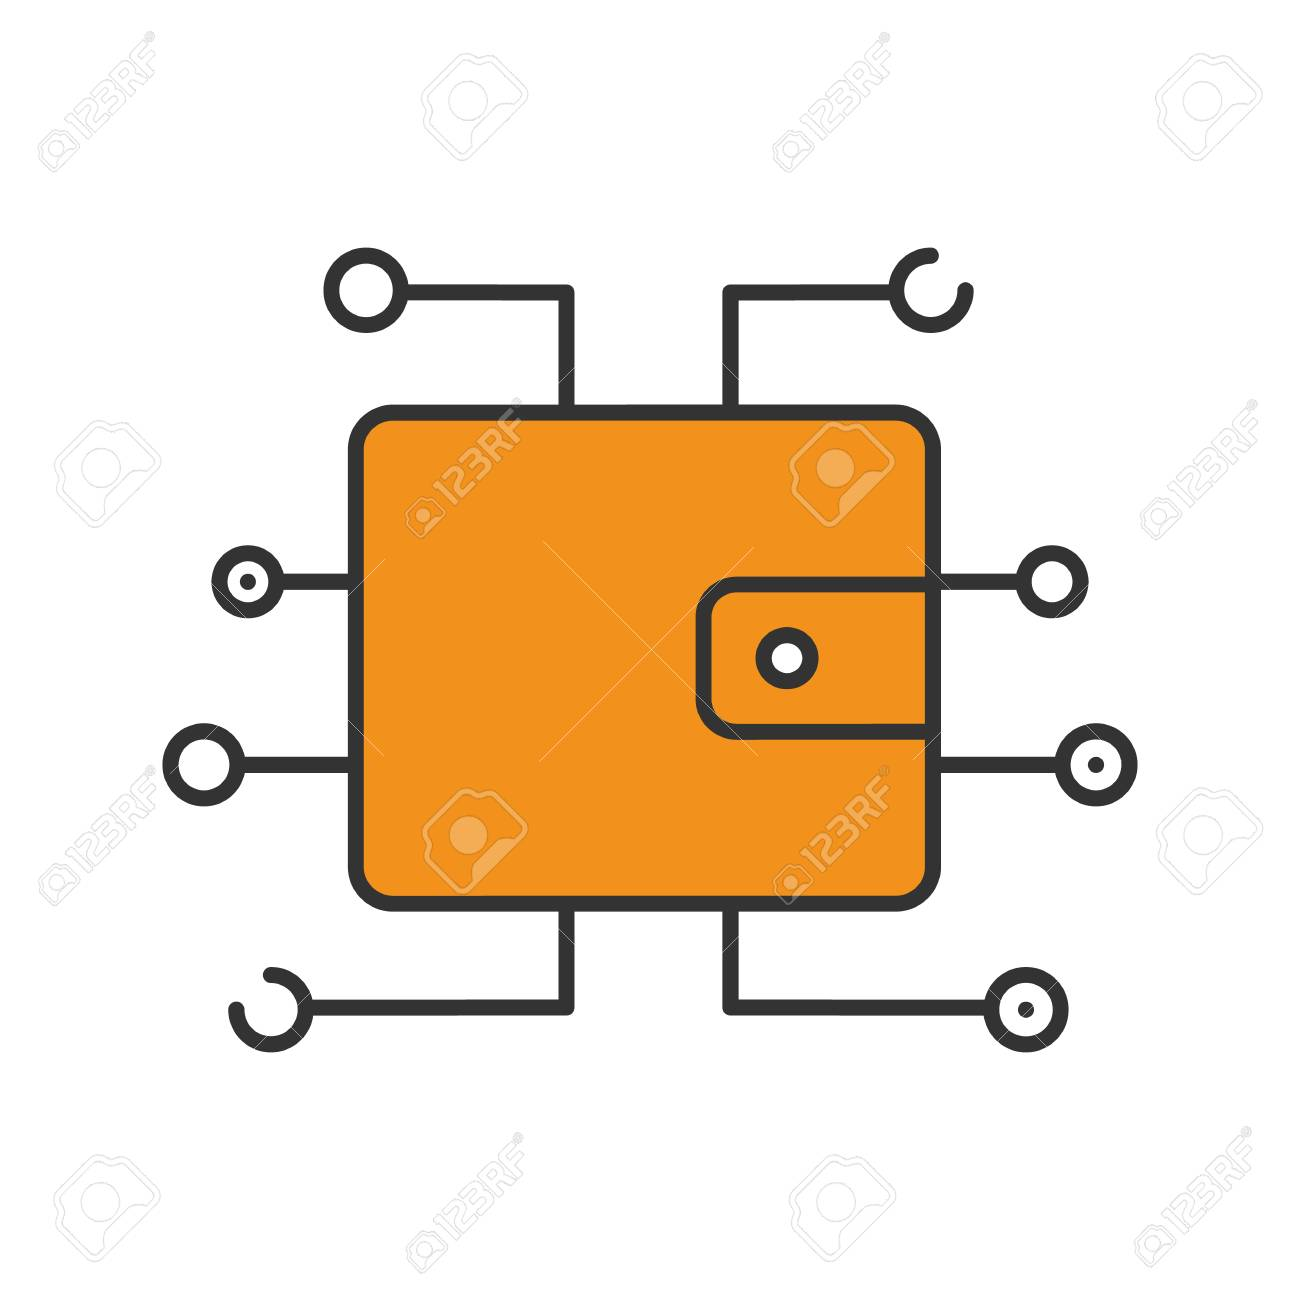 Digital Wallet Color Icon Cryptocurrency Payment Stock Vector